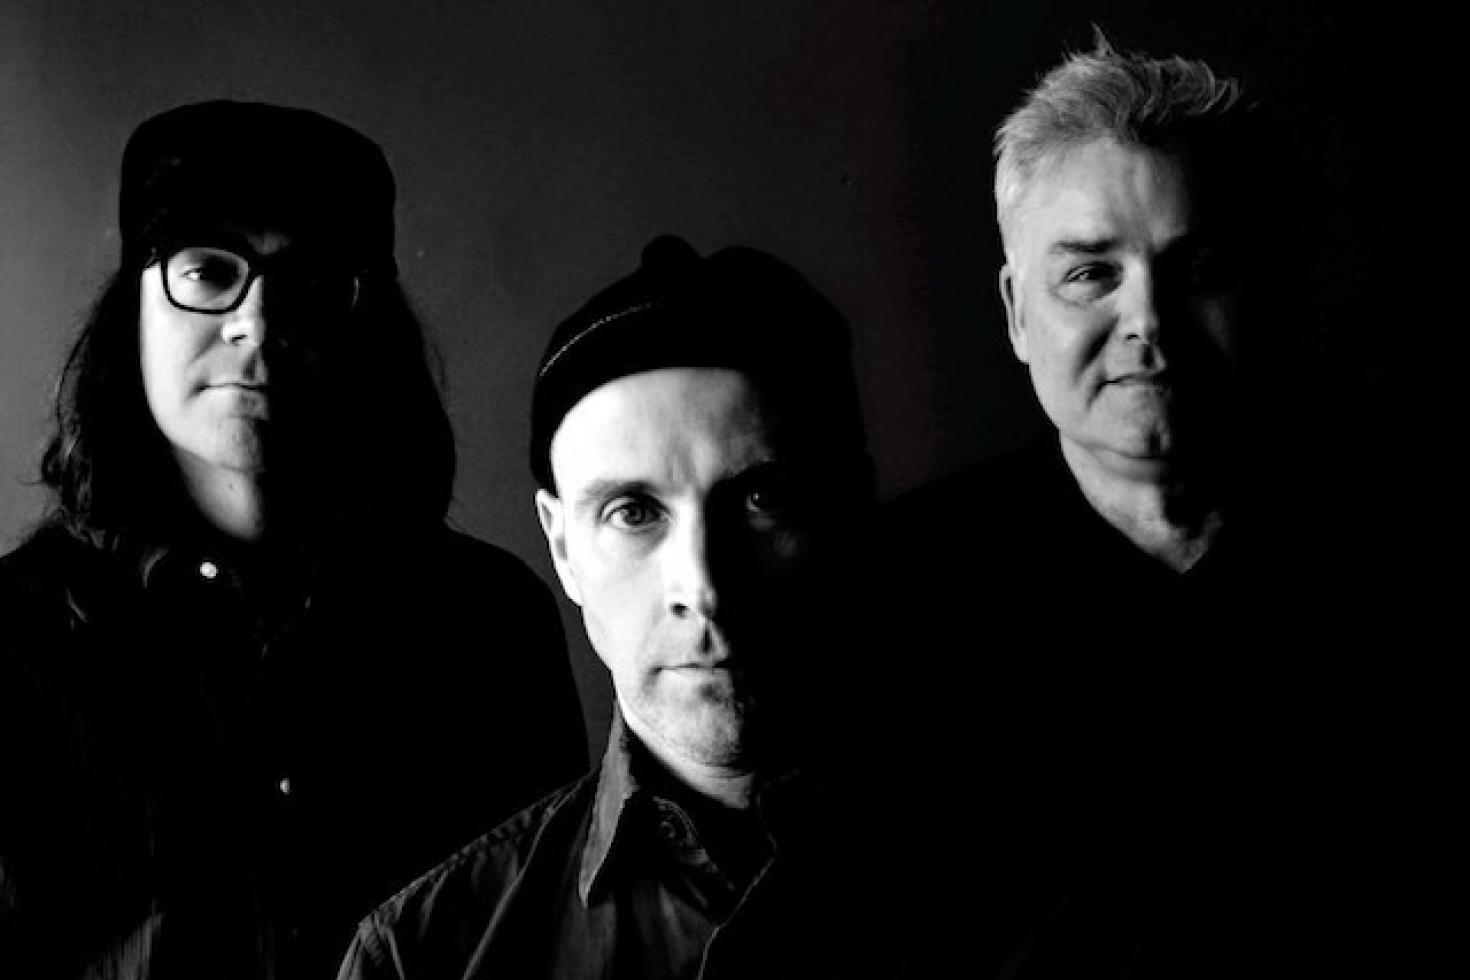 The Messthetics (featuring members of Fugazi) announce tour dates in early 2019